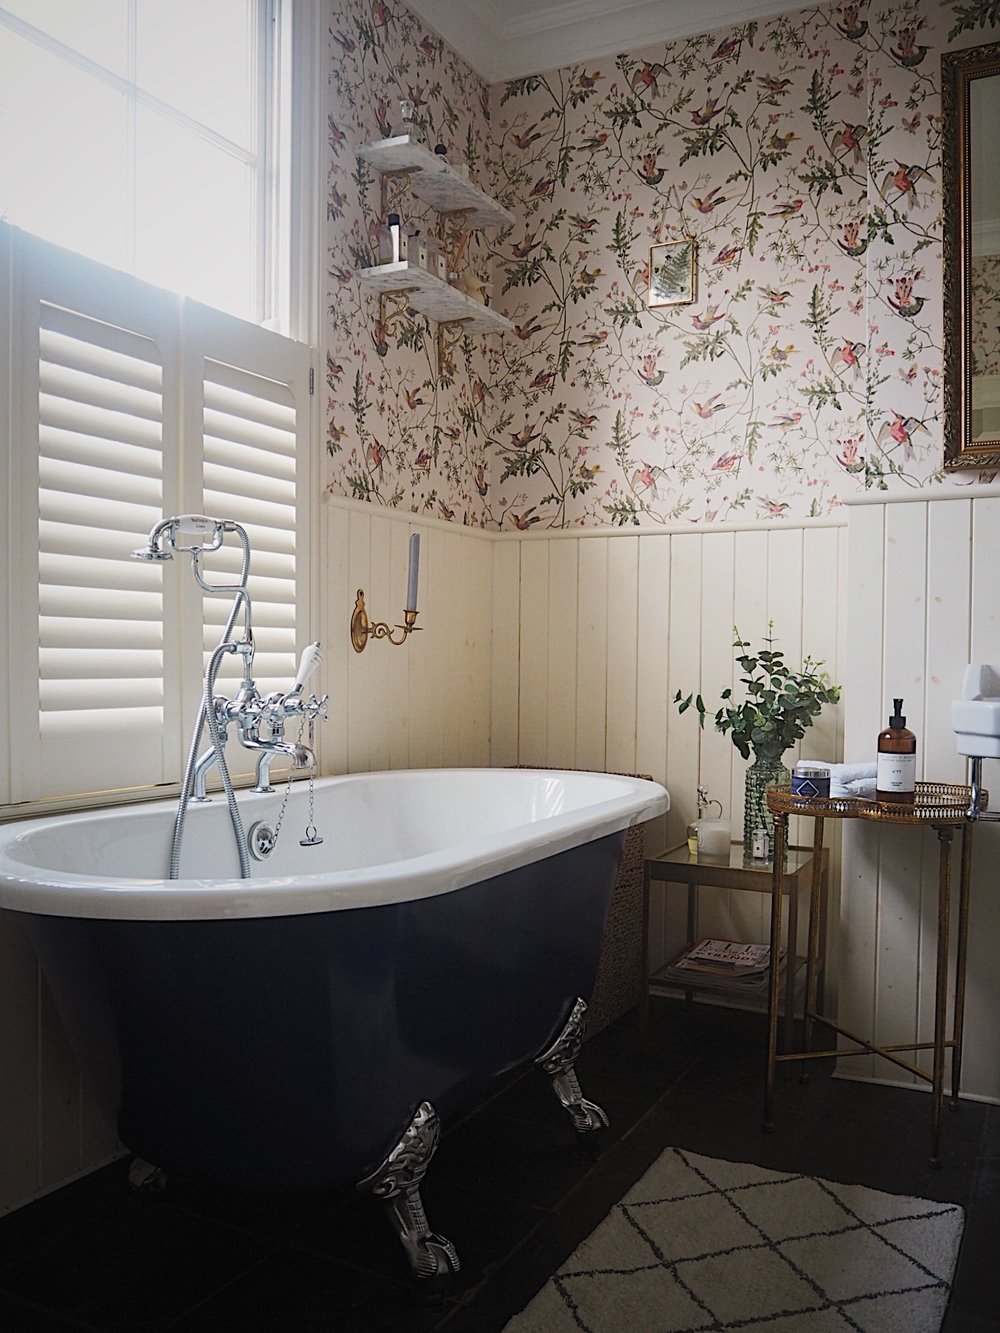 Mini bathroom makeover using wallpaper in the bathroom melanie lissack interiors for Wallpaper trends for bathrooms